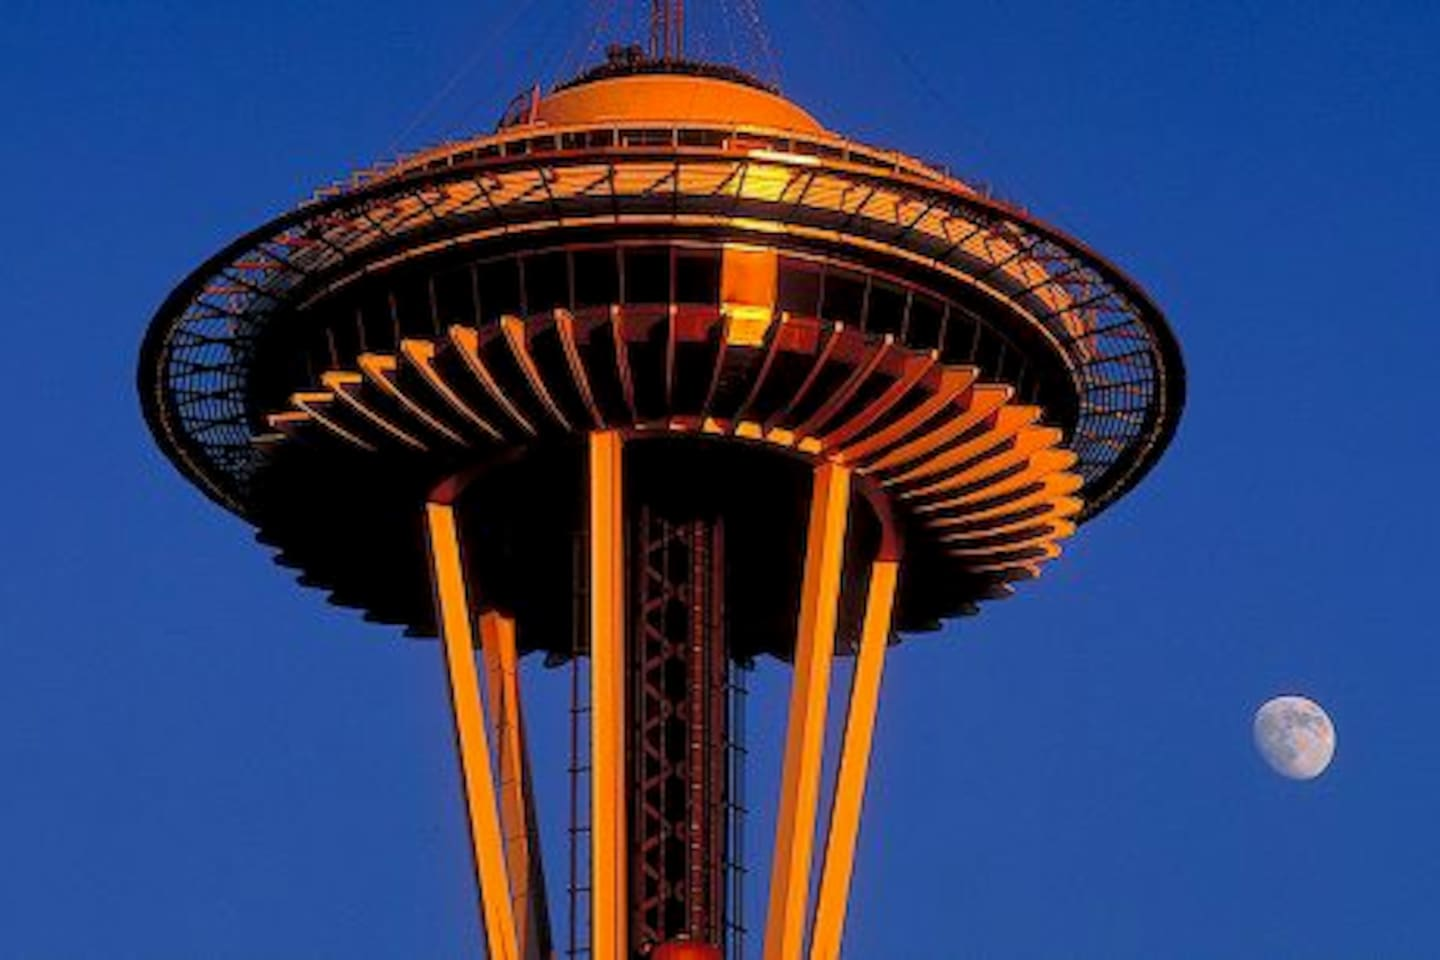 We are just two blocks from the Space Needle and the Seattle Center